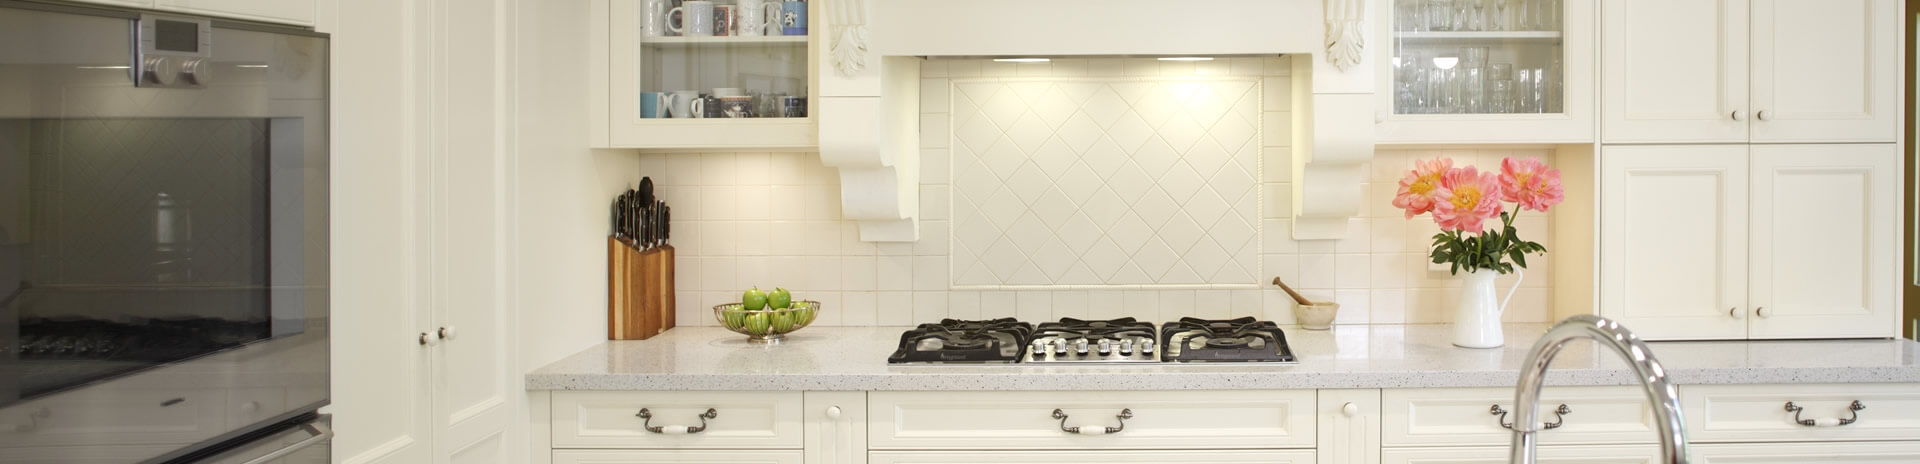 <p>Sydney Chooses <strong>Kenwood Kitchens</strong></p>